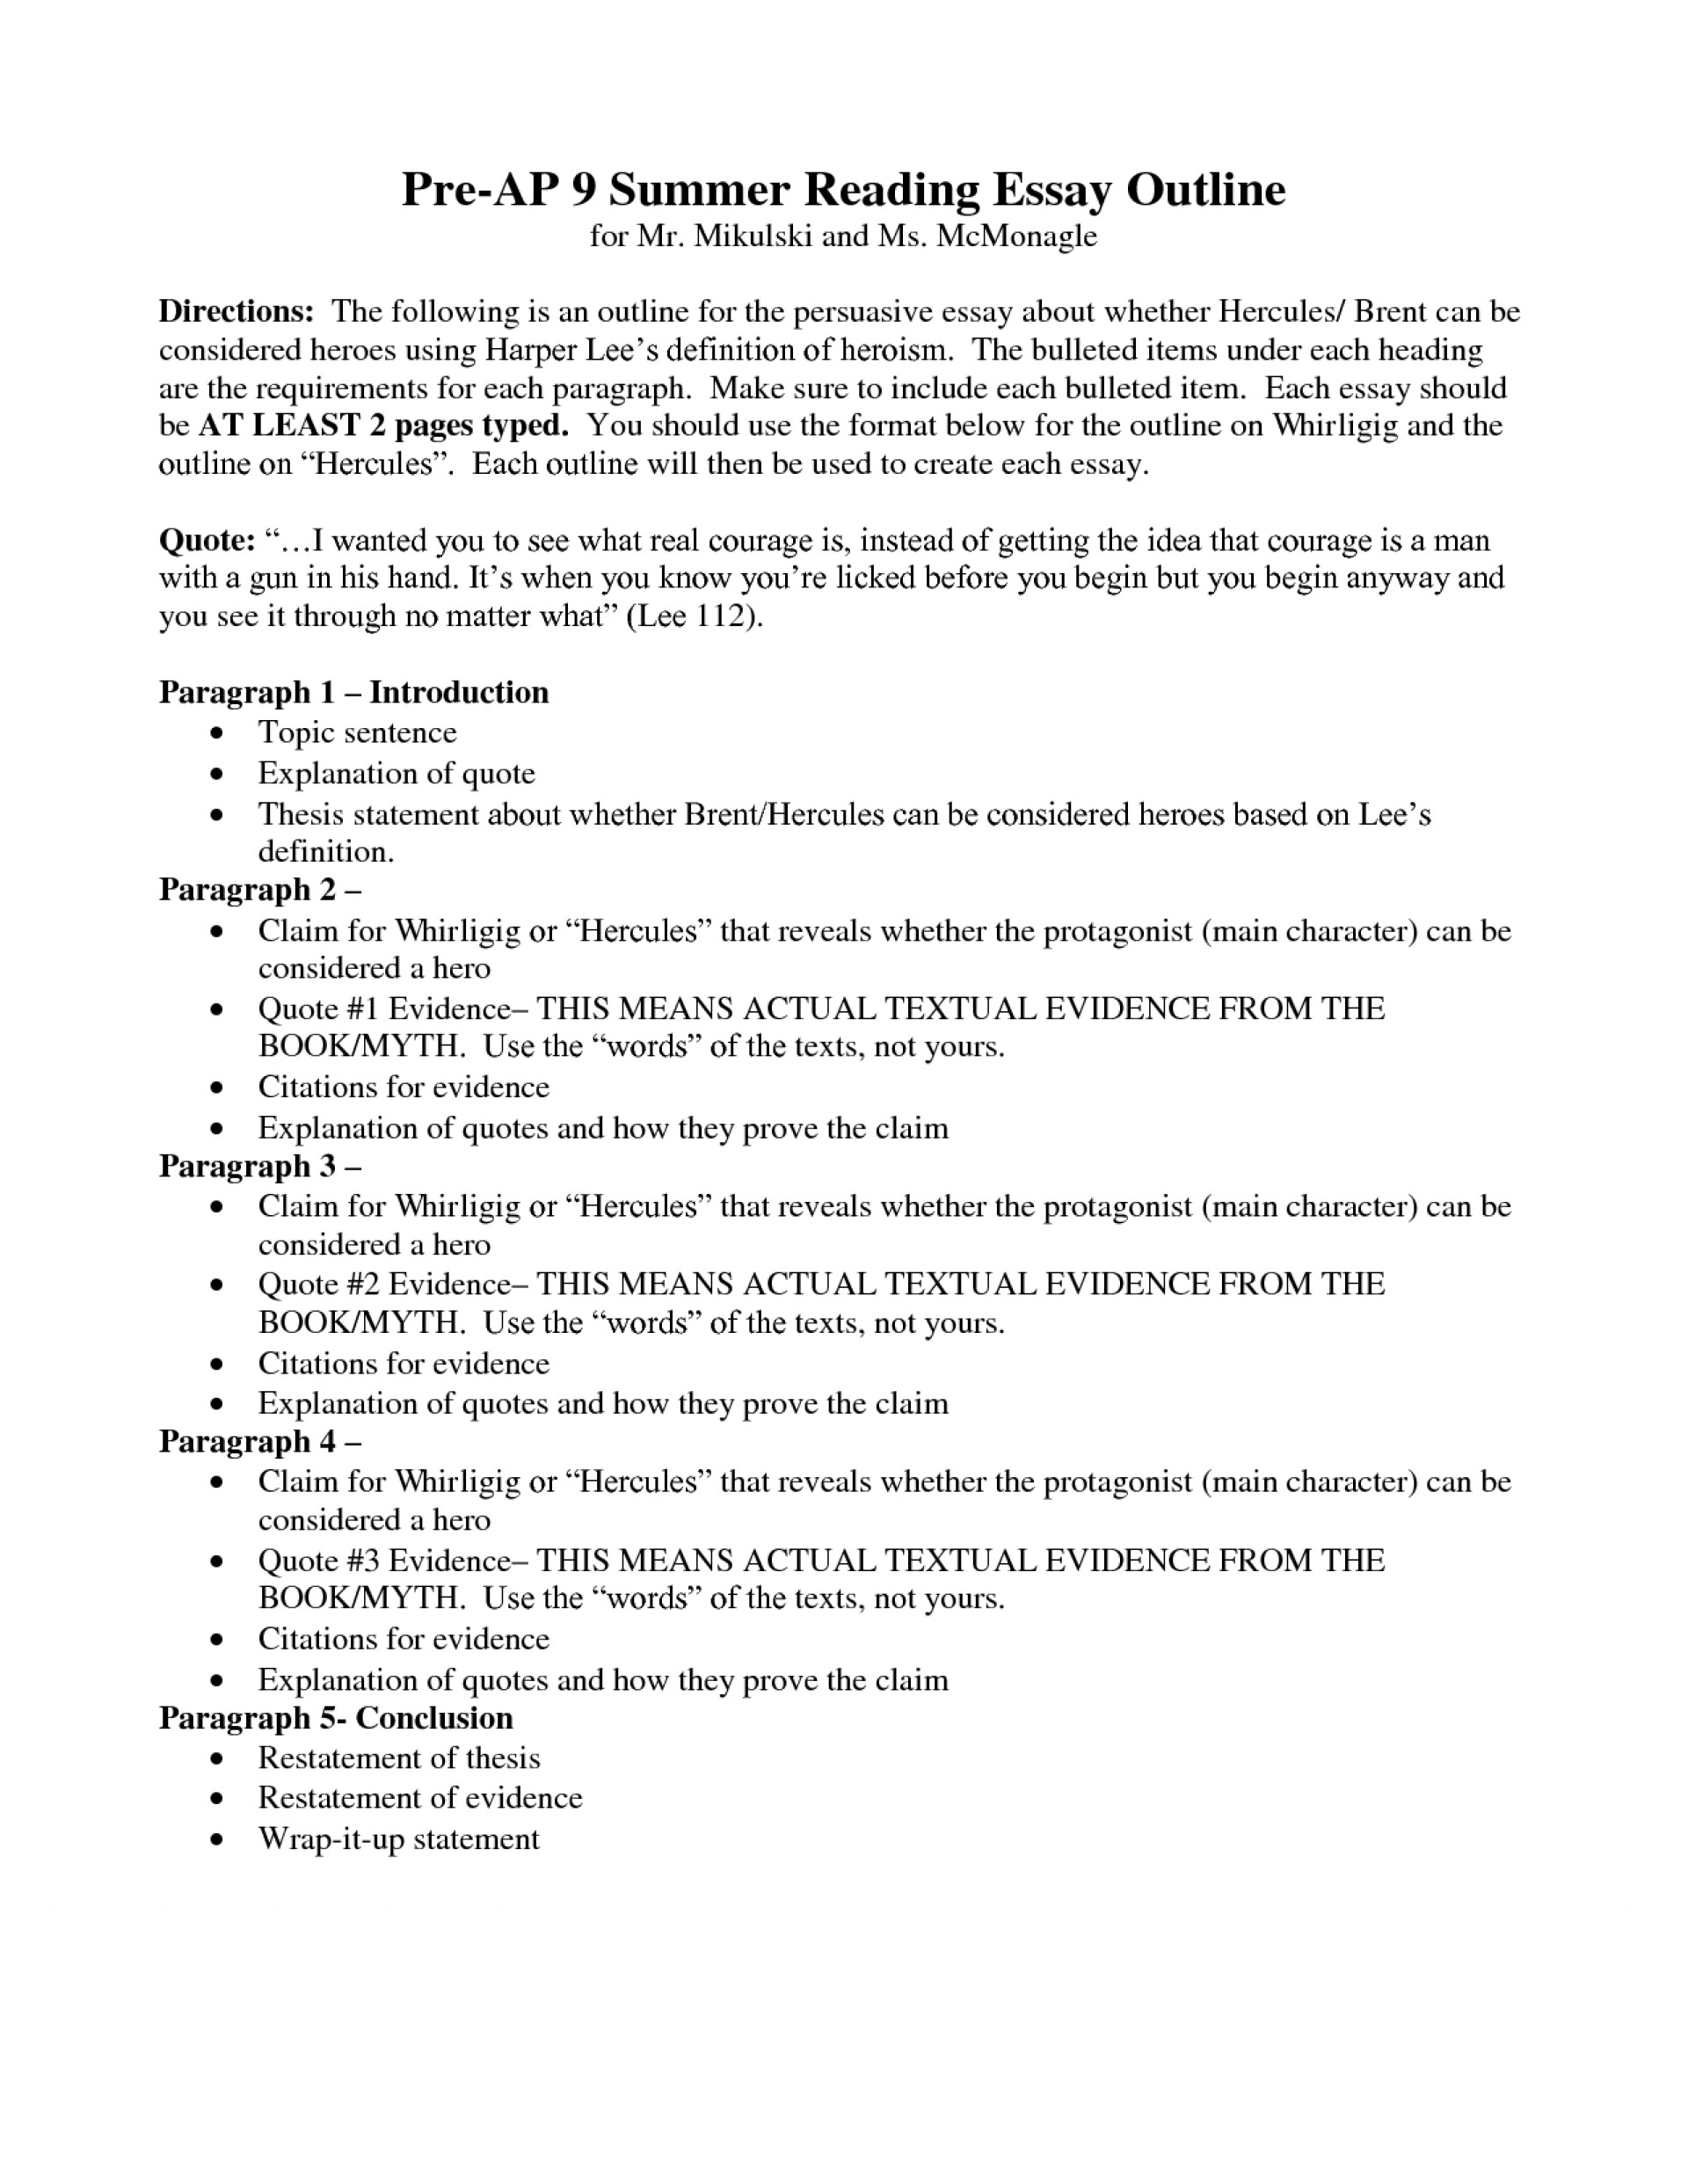 018 Definition Essay Outline Example Writing About Heroism Essays Sample Format Of Freedom On Happiness Success Topics Love Family Respect Extended Phenomenal 1920